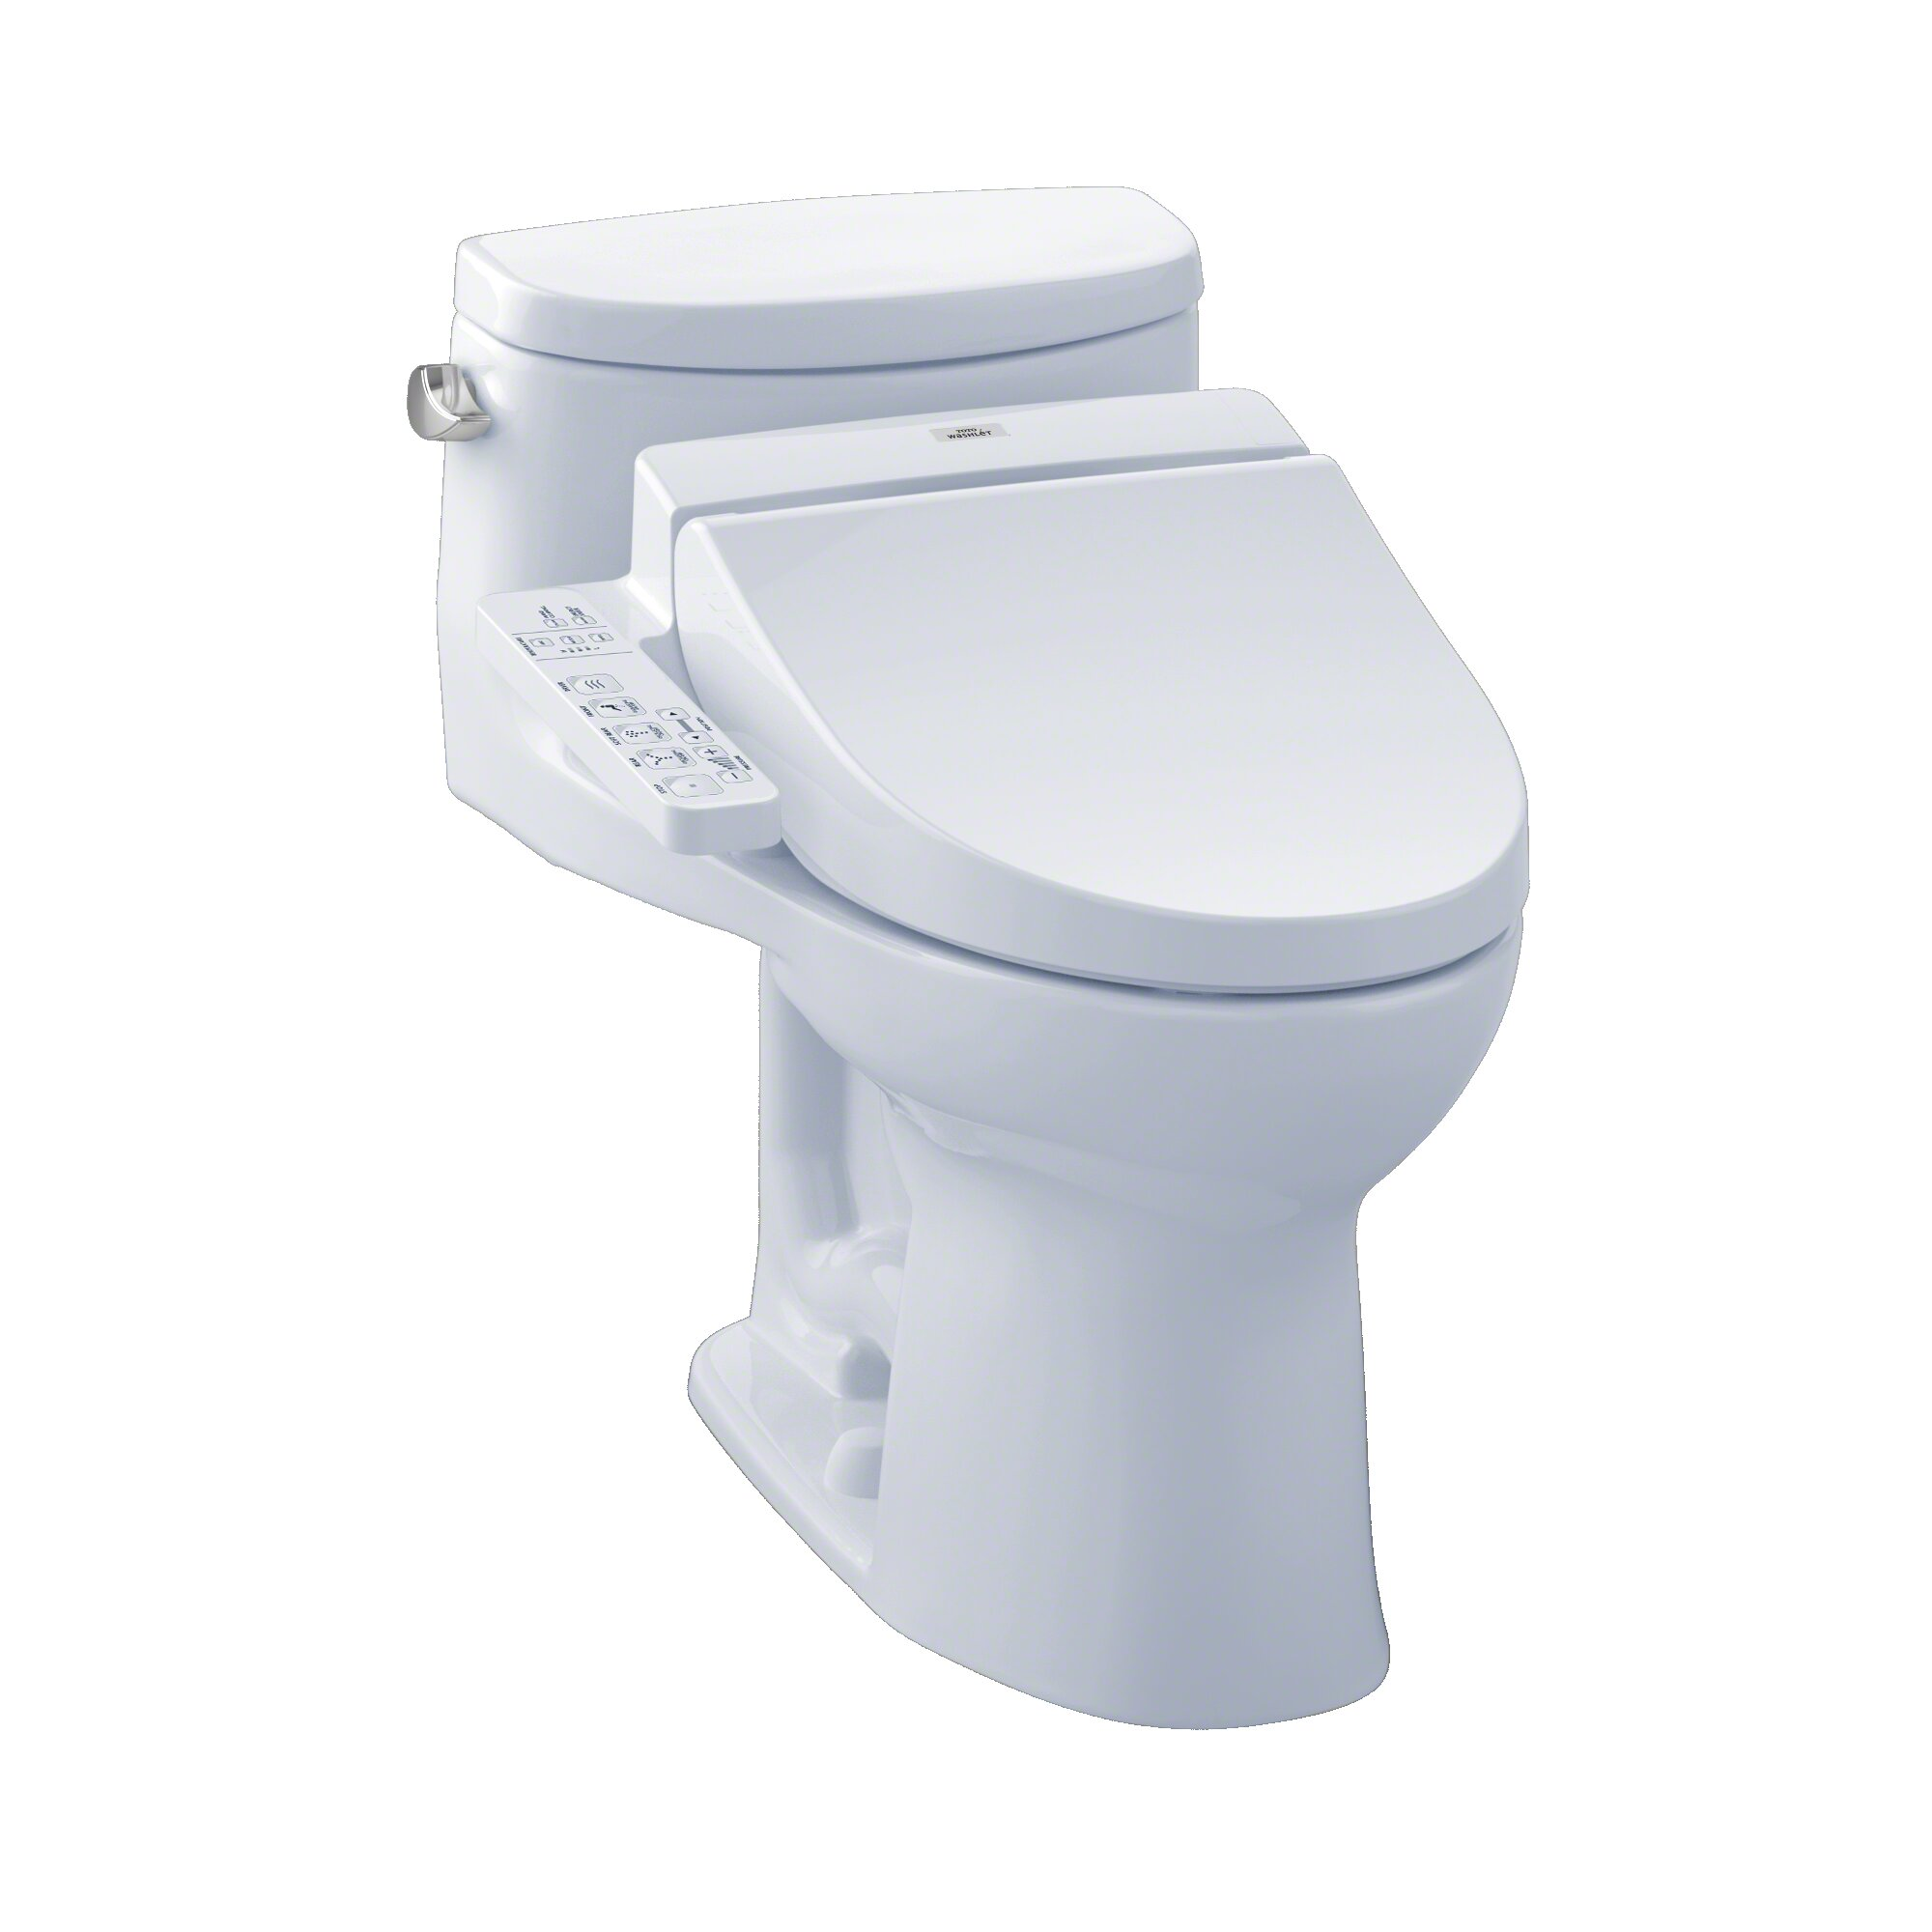 Fine Supreme 1 28 Gpf Elongated Bidet Toilet With C100 Electronic Bidet Seat Pdpeps Interior Chair Design Pdpepsorg